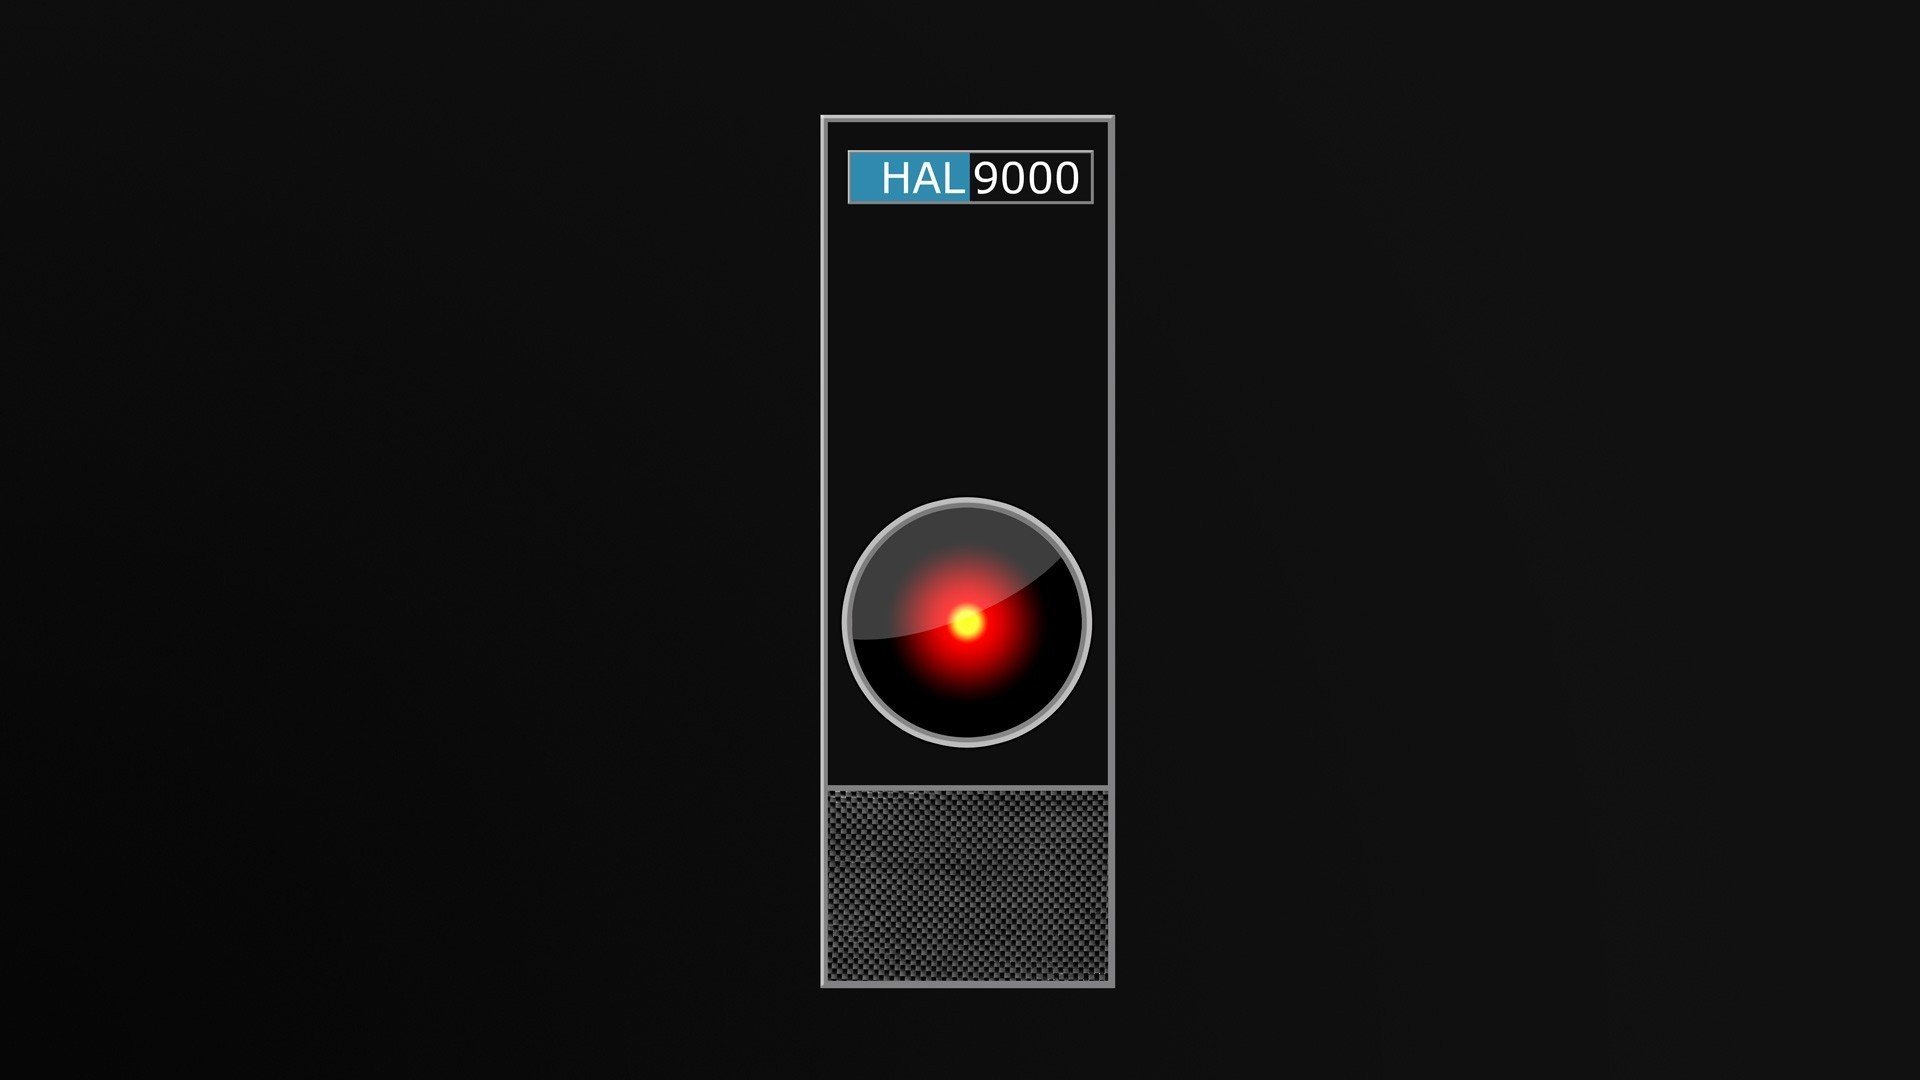 1920x1080 2001: A Space Odyssey HAL9000 Logic Memory Systems wallpaper |  |  313835 | WallpaperUP